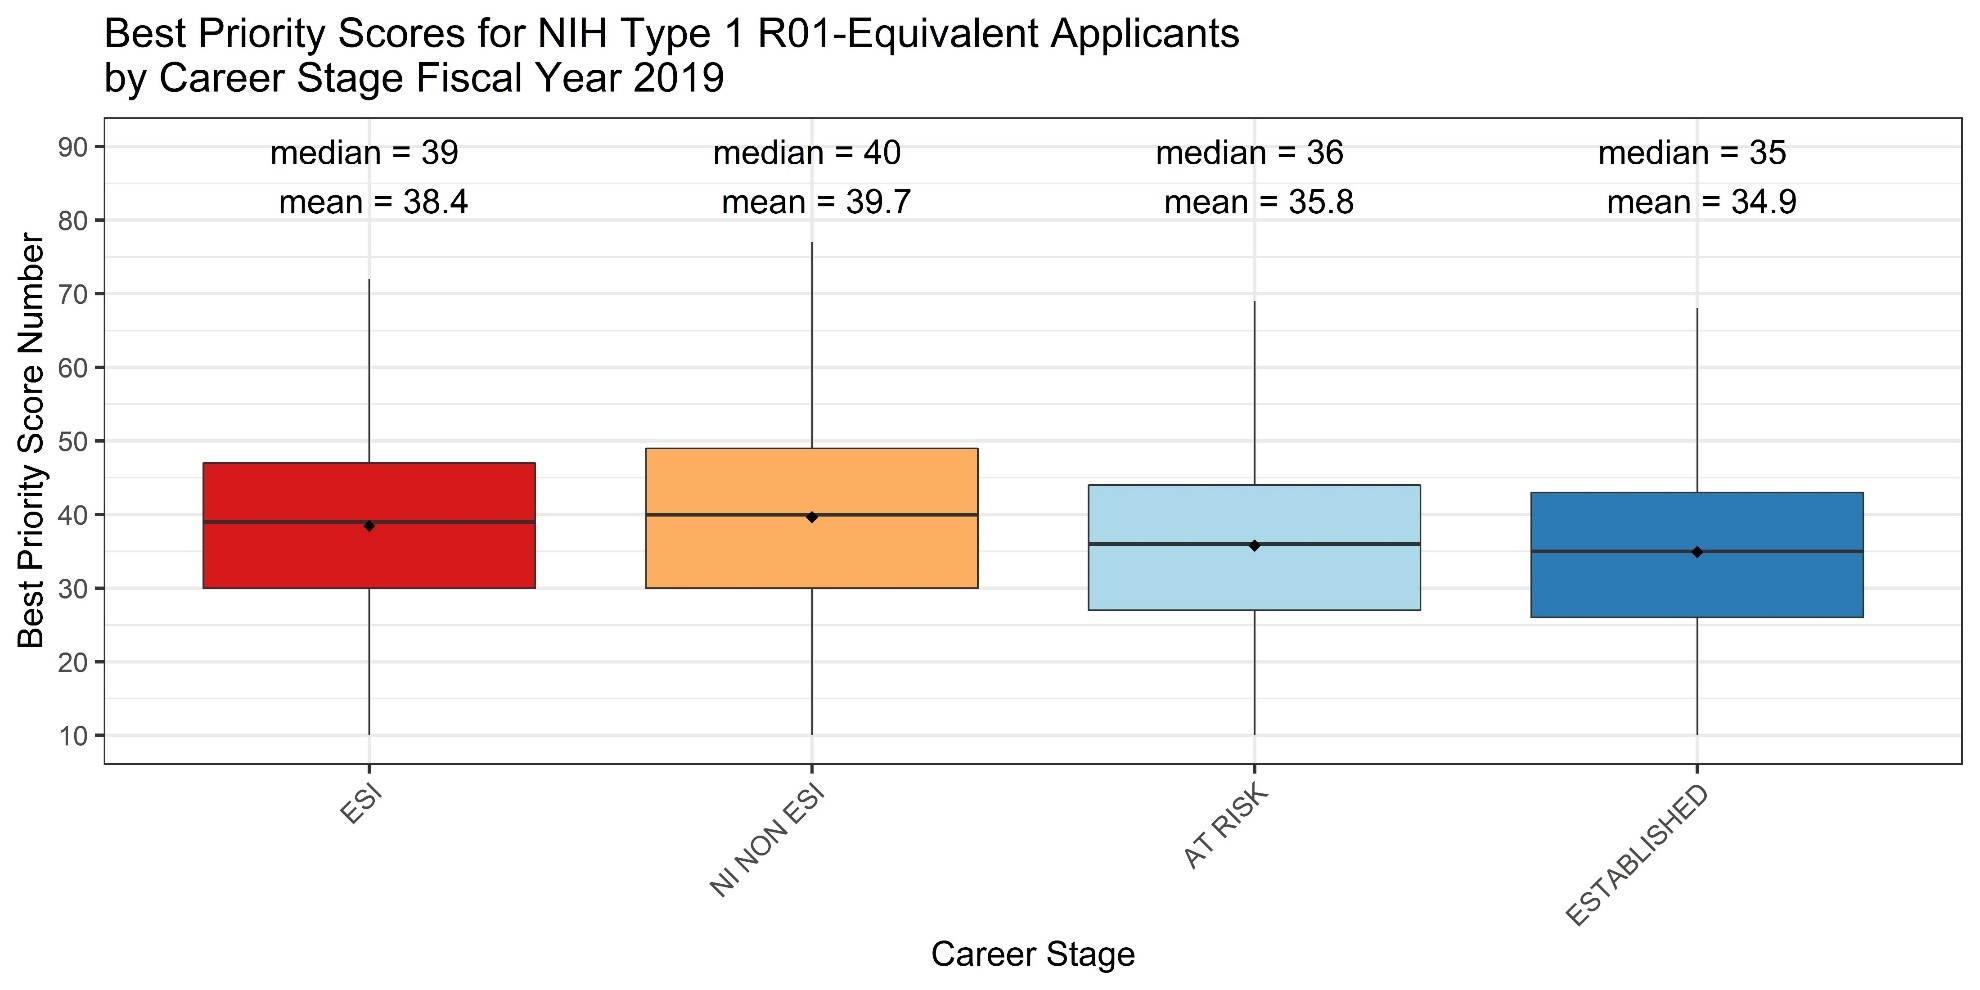 Figure 3 is a box plot that depicts the best priority score for NIH Type 1 R01-equivalent applicants by their career stage in FY 2019. The X axis represents career stage, while the Y axis is the priority score from 10 to 90. Red, orange, light blue, and dark blue bars represent early-stage investigators, new investigators who are not ESIs, at-risk investigators, and established investigators, respectively. MEDIANs AND MEANS ARE reported ABOVE EACH career stage bar.